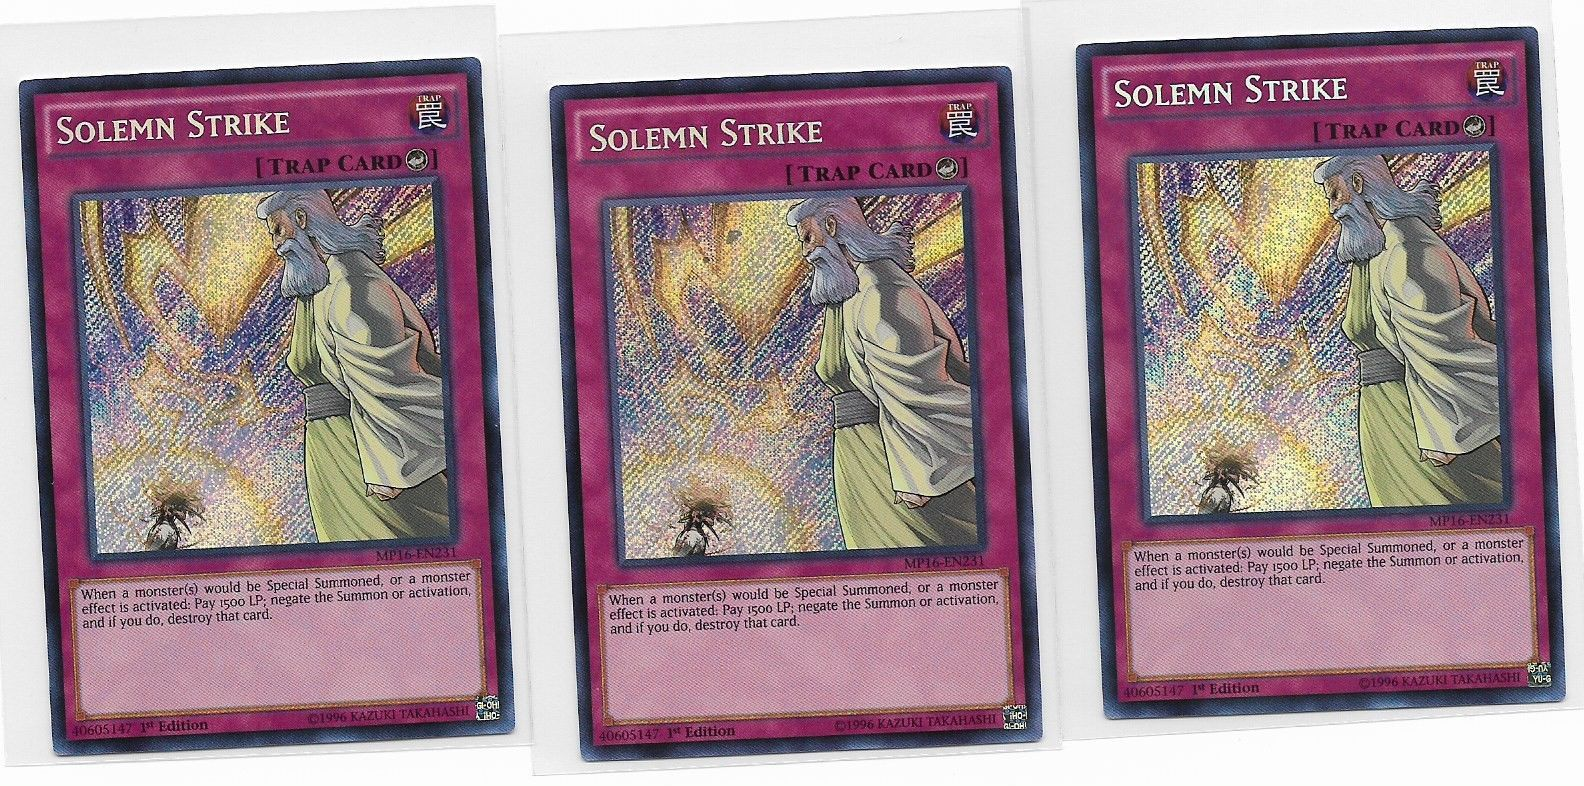 YU-GI-OH 3x SOLEMN STRIKE MP16-EN231 1st EDITION SECRET RARE https://t.co/5WxIZMrCB5 https://t.co/5Rh1Tcgb2g